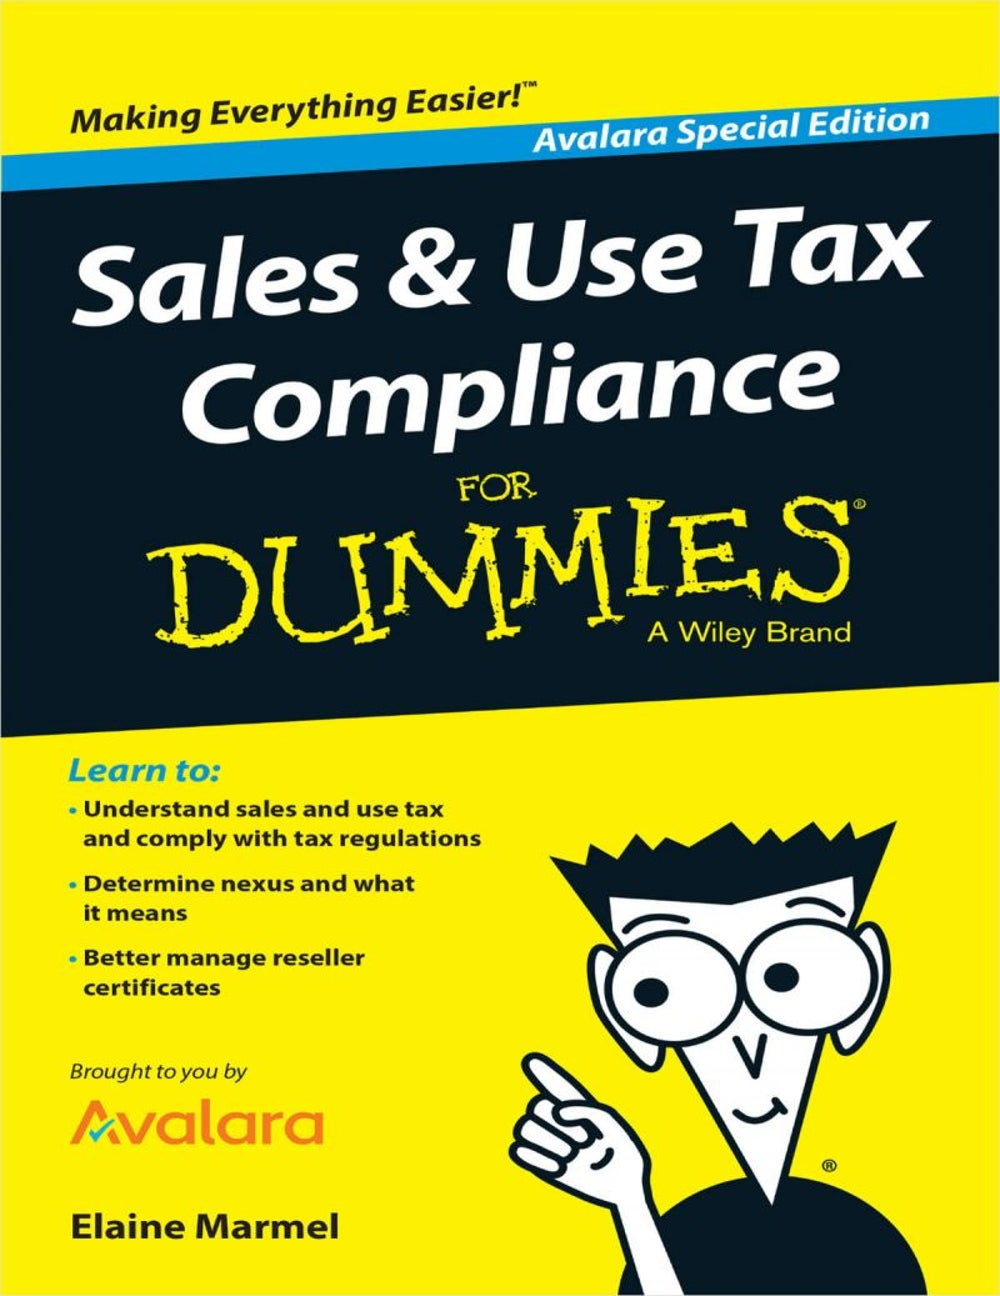 """Sales & Use Tax Compliance For Dummies"""